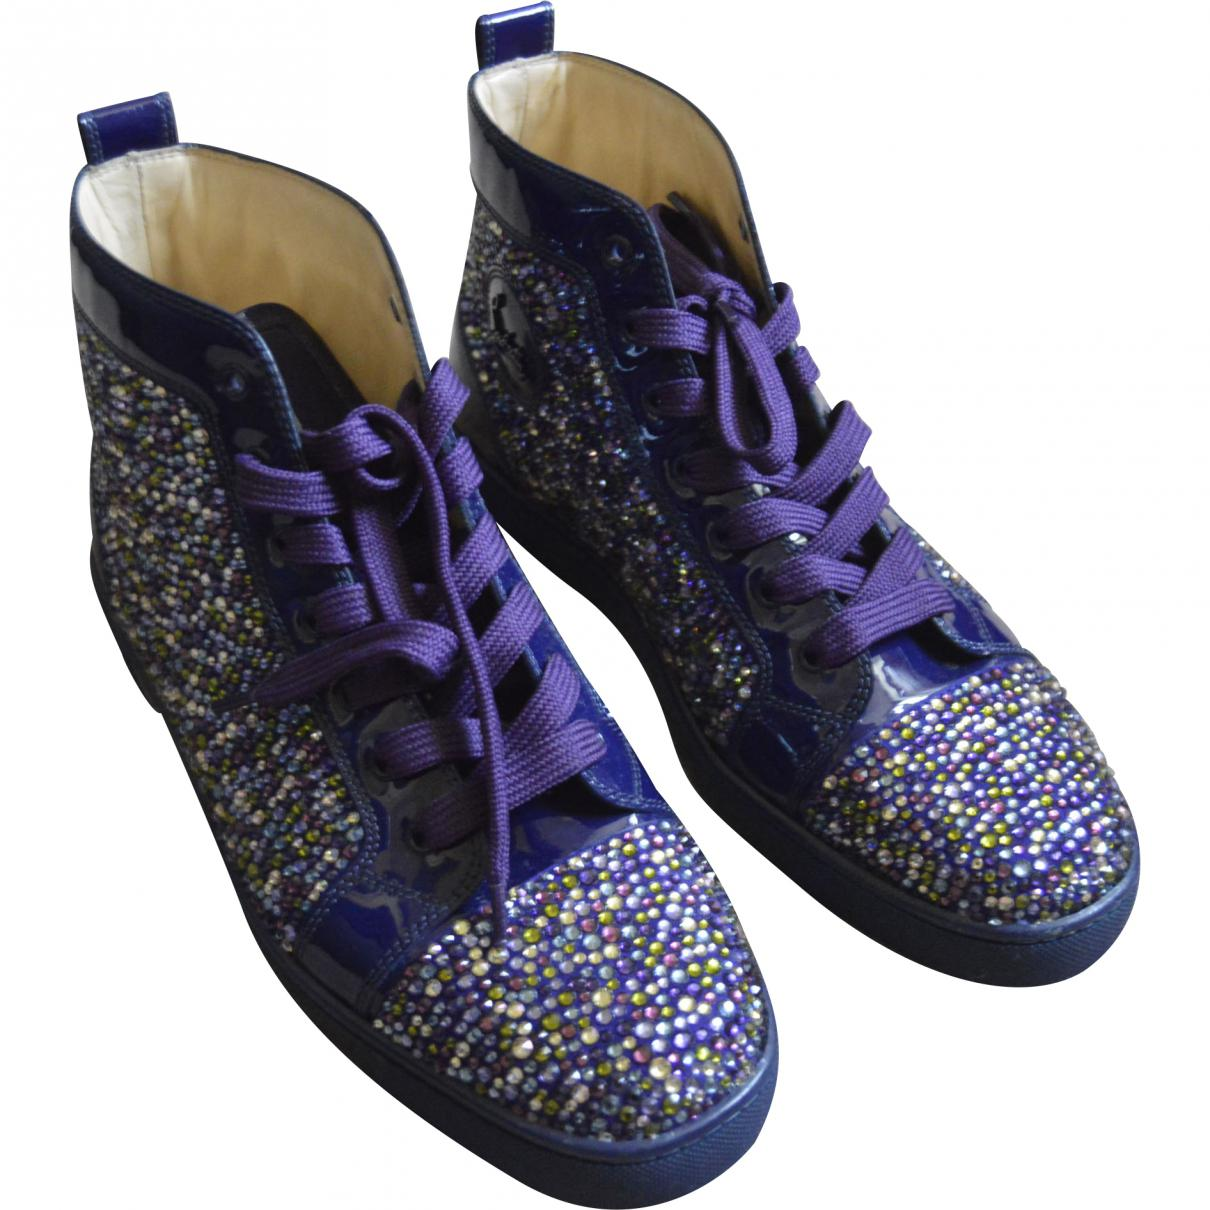 04d8c7d042c Lyst - Christian Louboutin Pre-owned Leather High Trainers in Purple